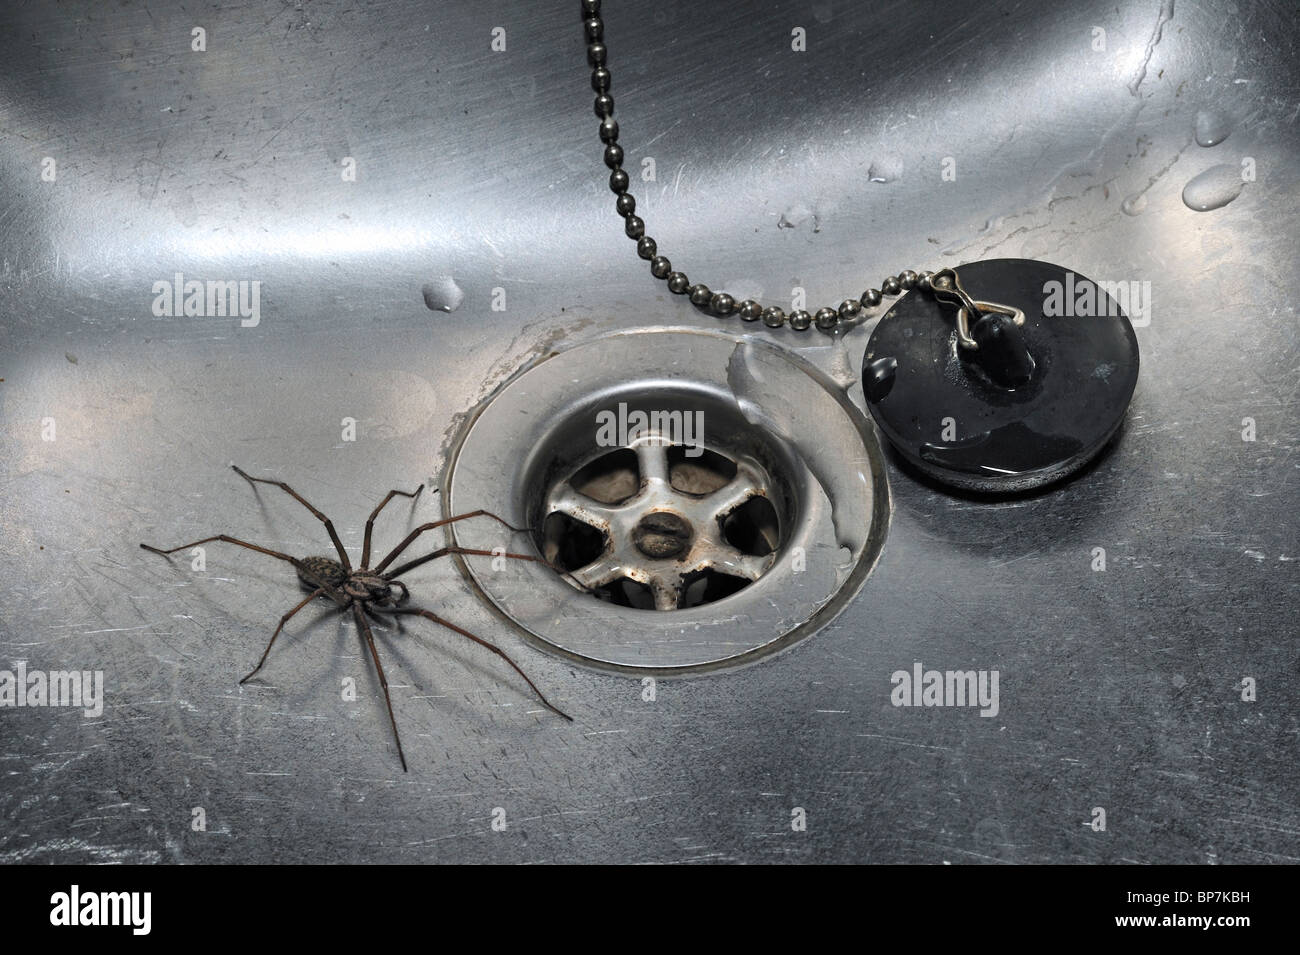 European common house spider (Eratigena atrica / Tegenaria atrica) in kitchen sink next to plug-hole - Stock Image